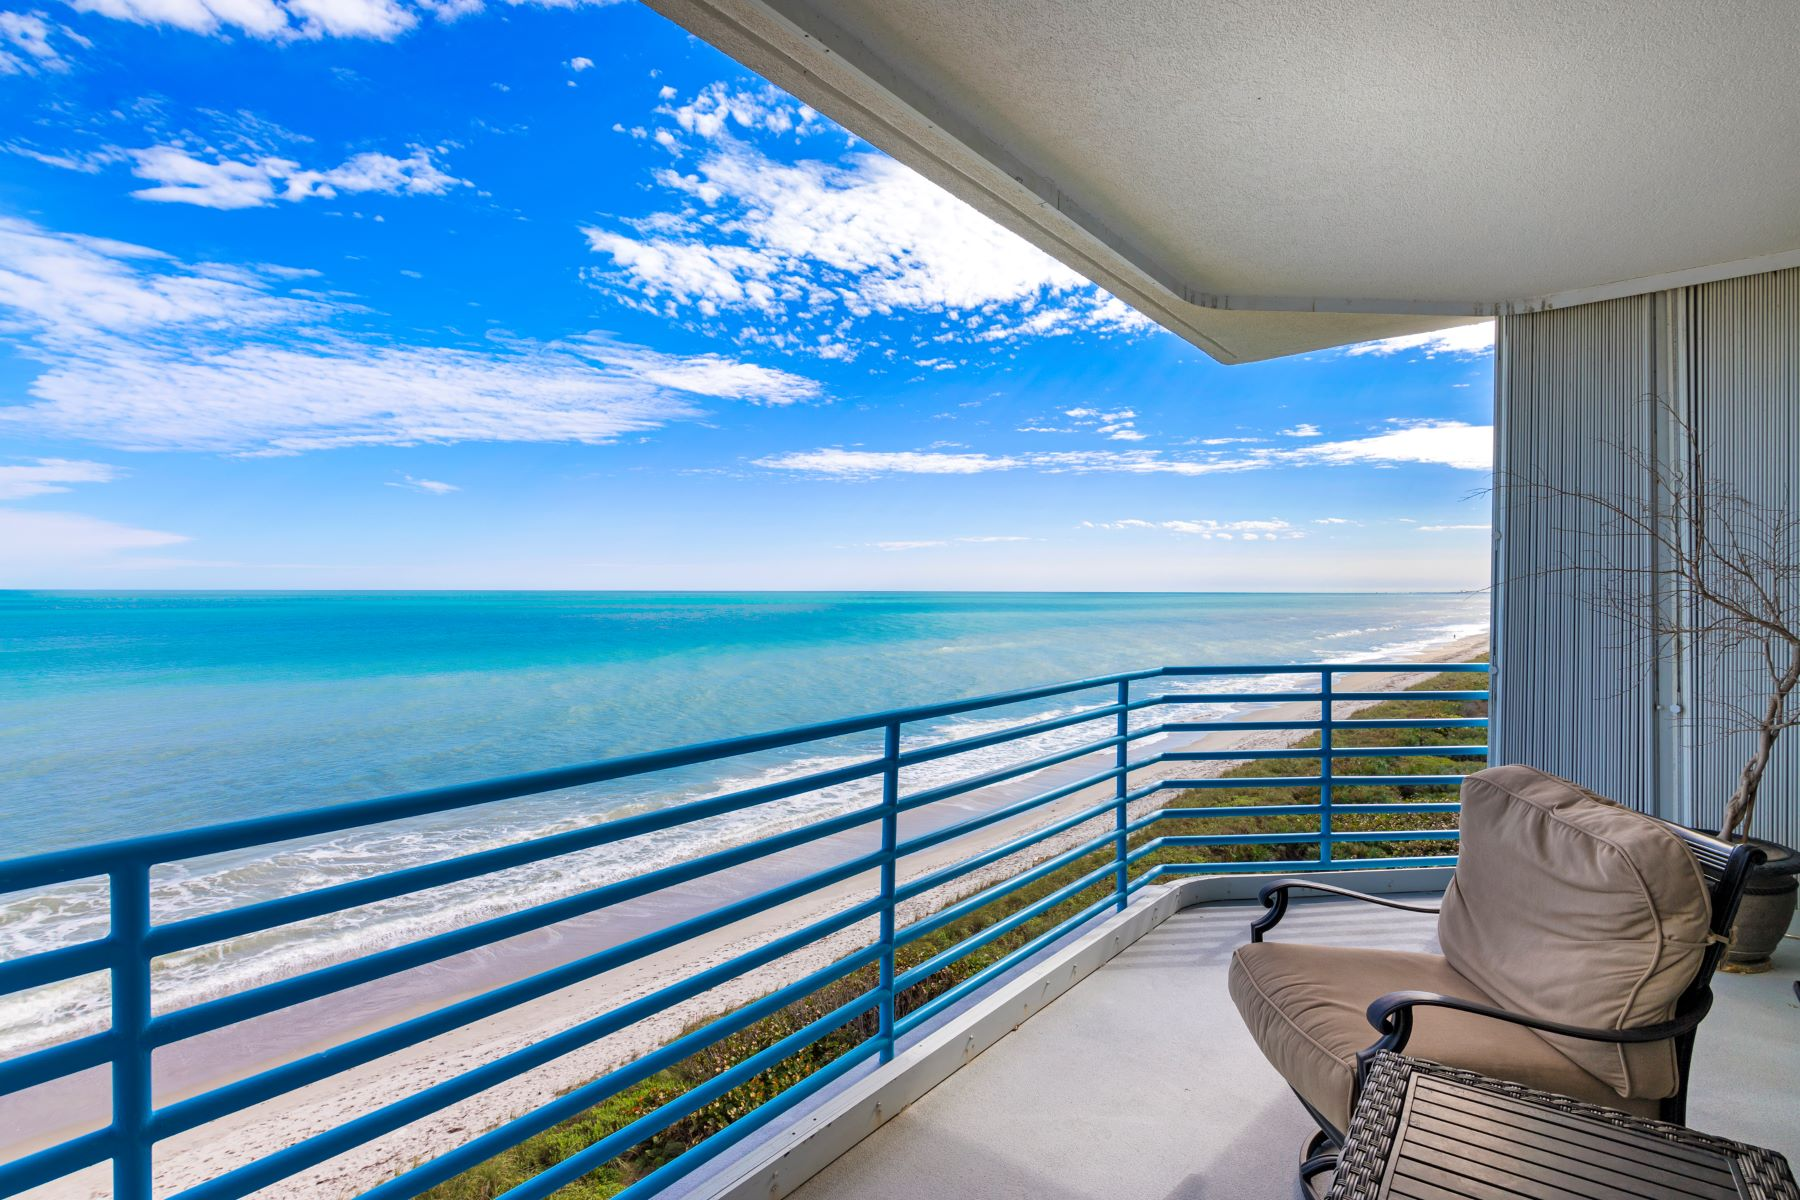 Additional photo for property listing at 581 Highway A1A 701 Satellite Beach, Florida 32937 United States